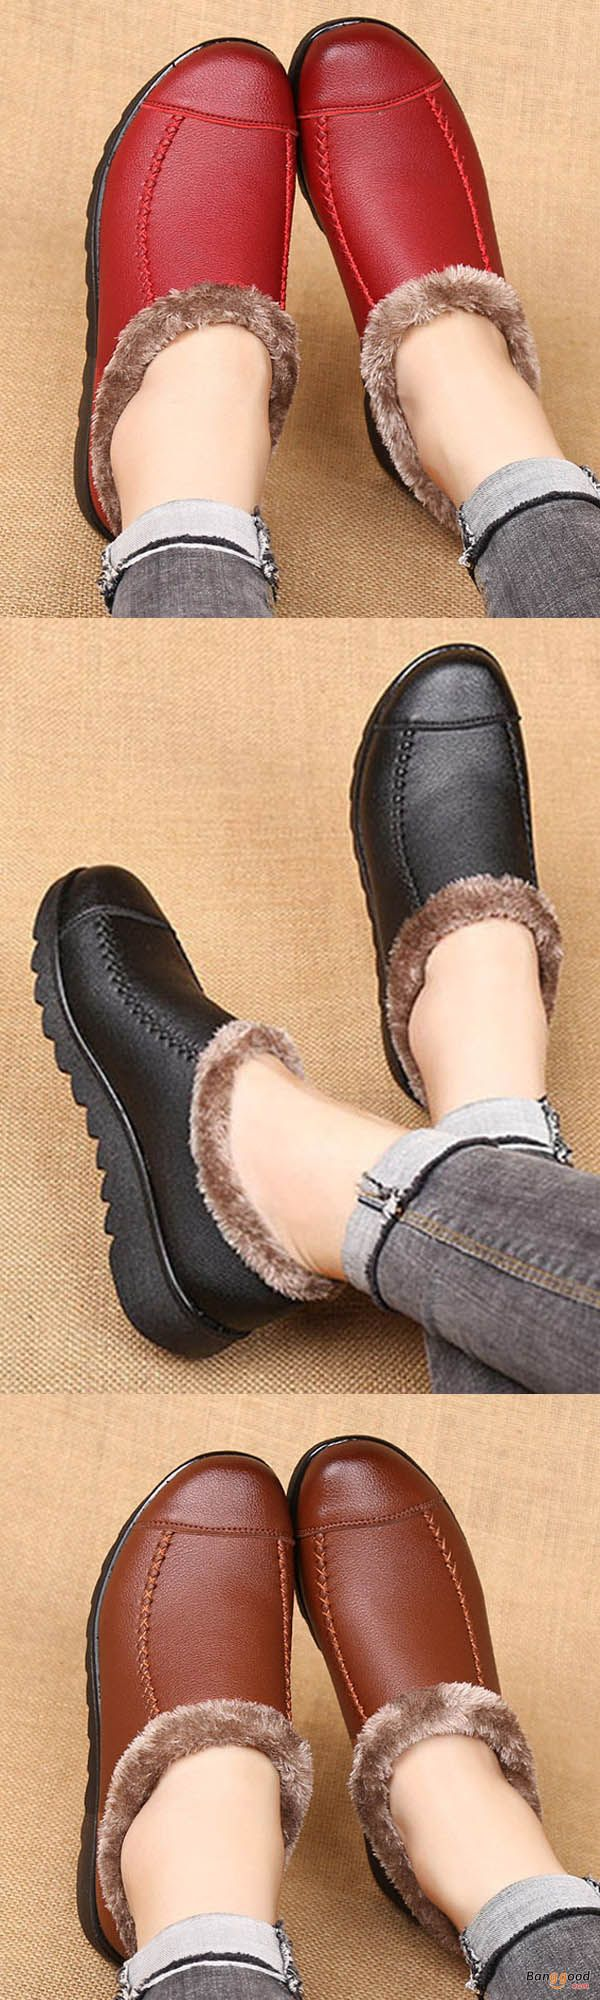 Soft sole slip-on leather casual fur-lining shoes. $28.96 + free shipping.